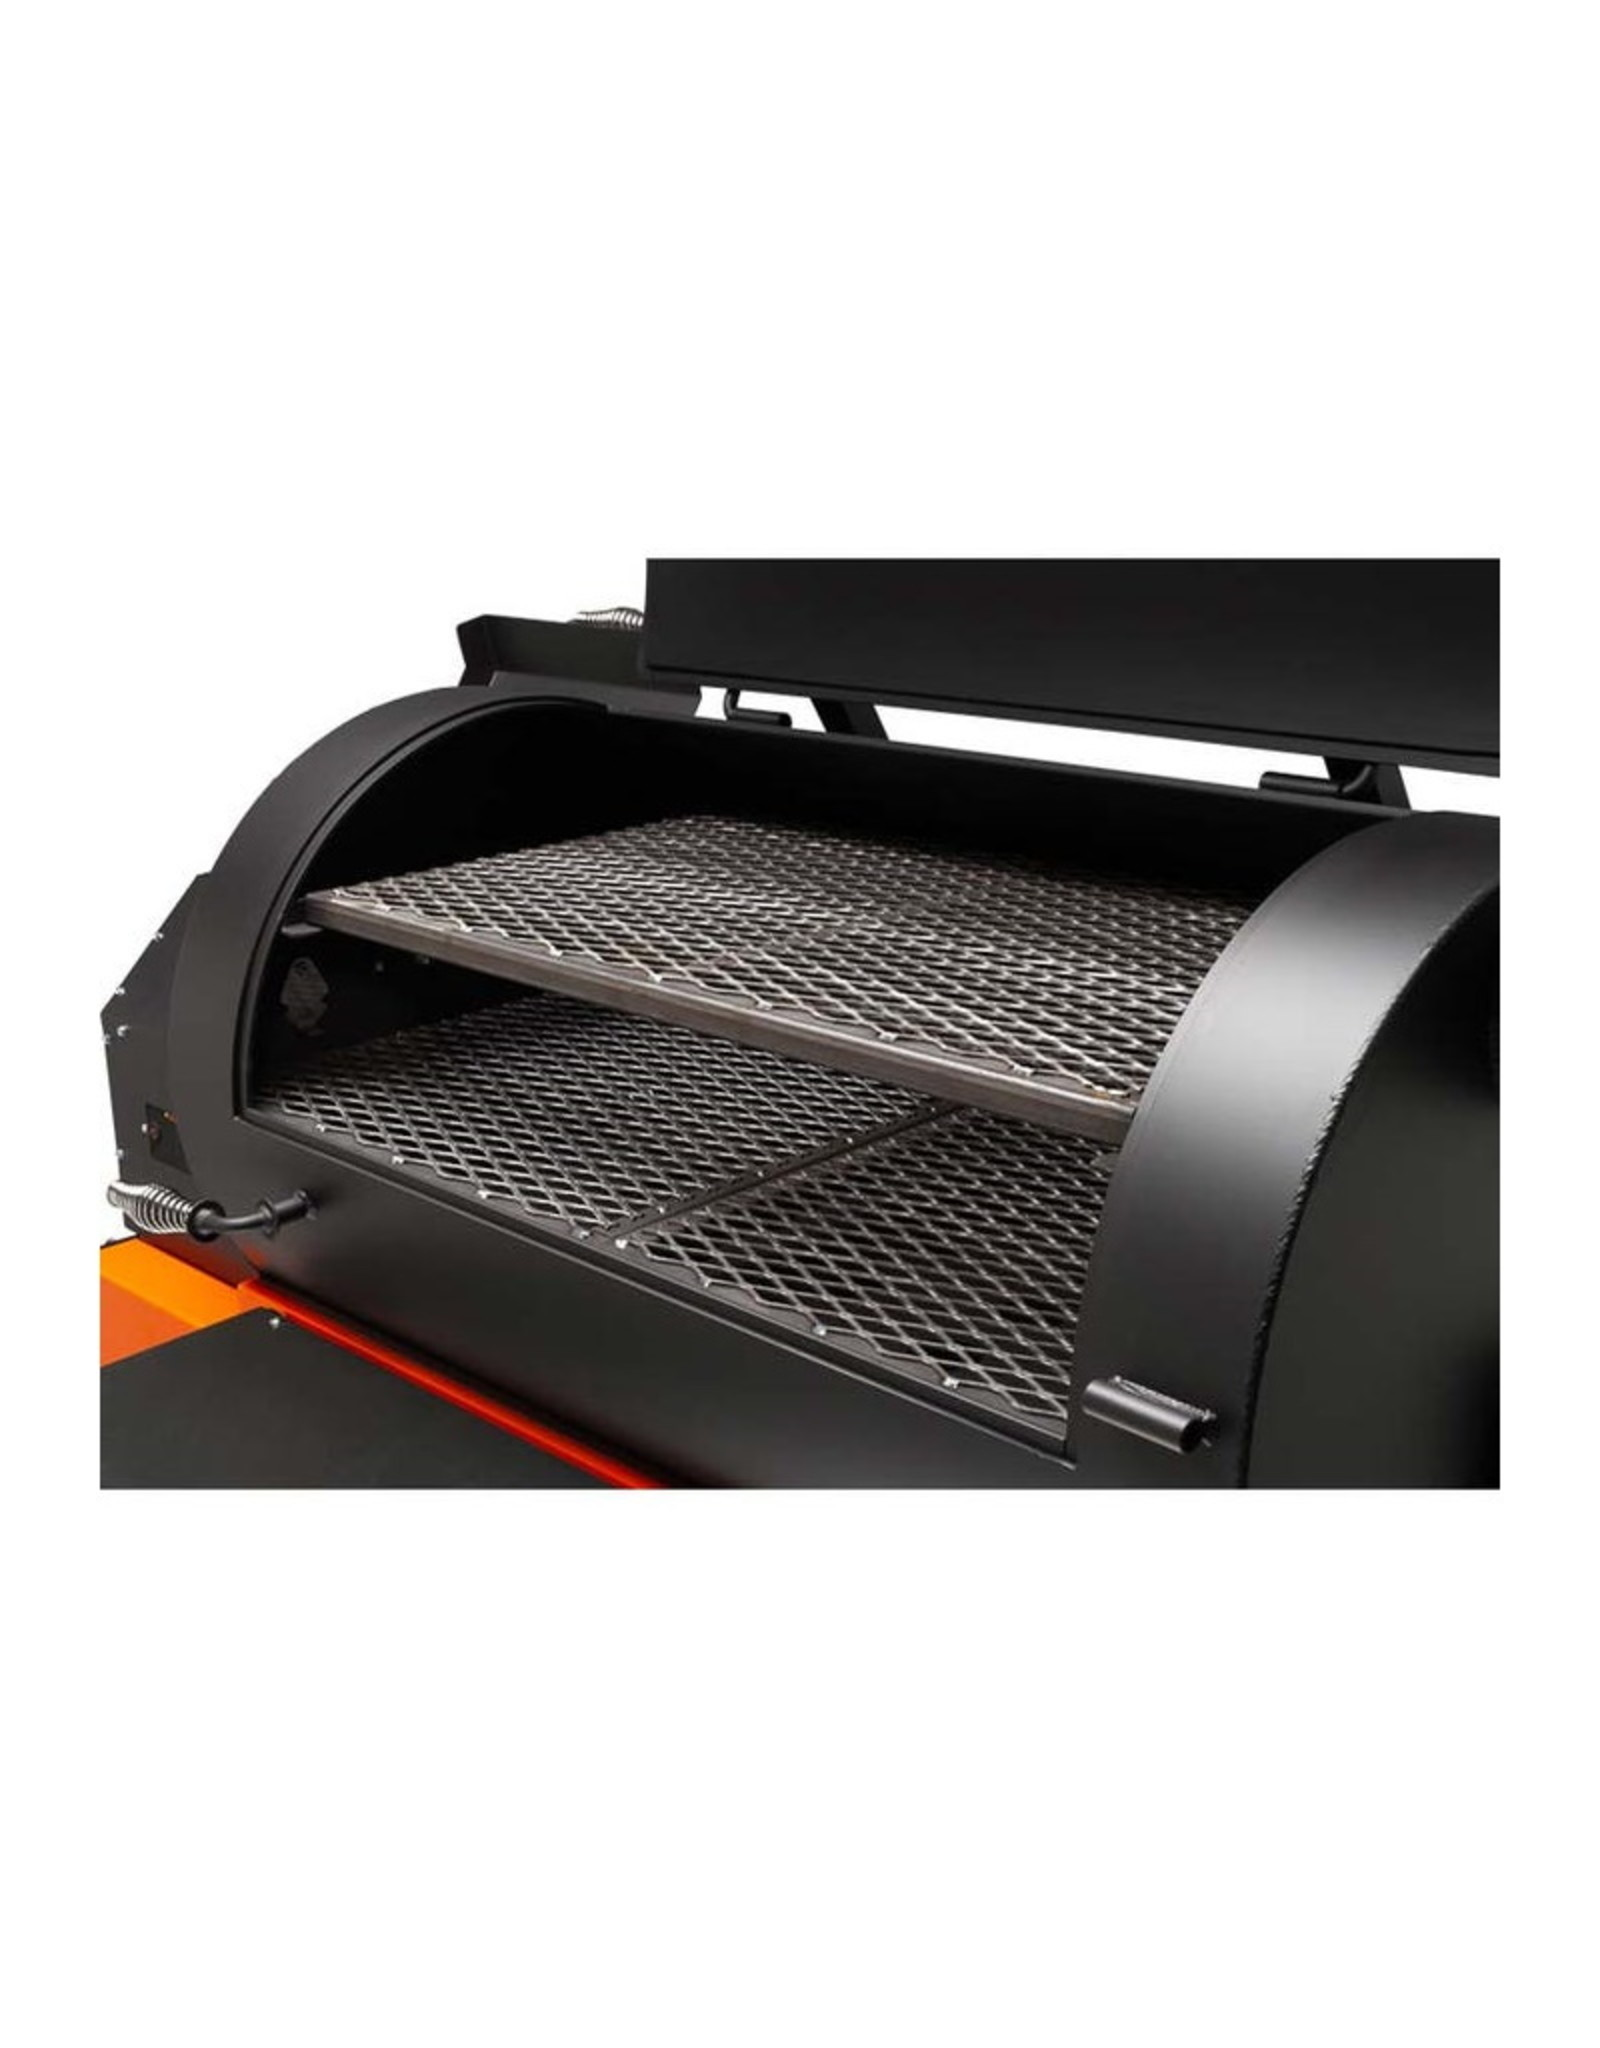 Yoder Smokers YS1500s Pellet Grill